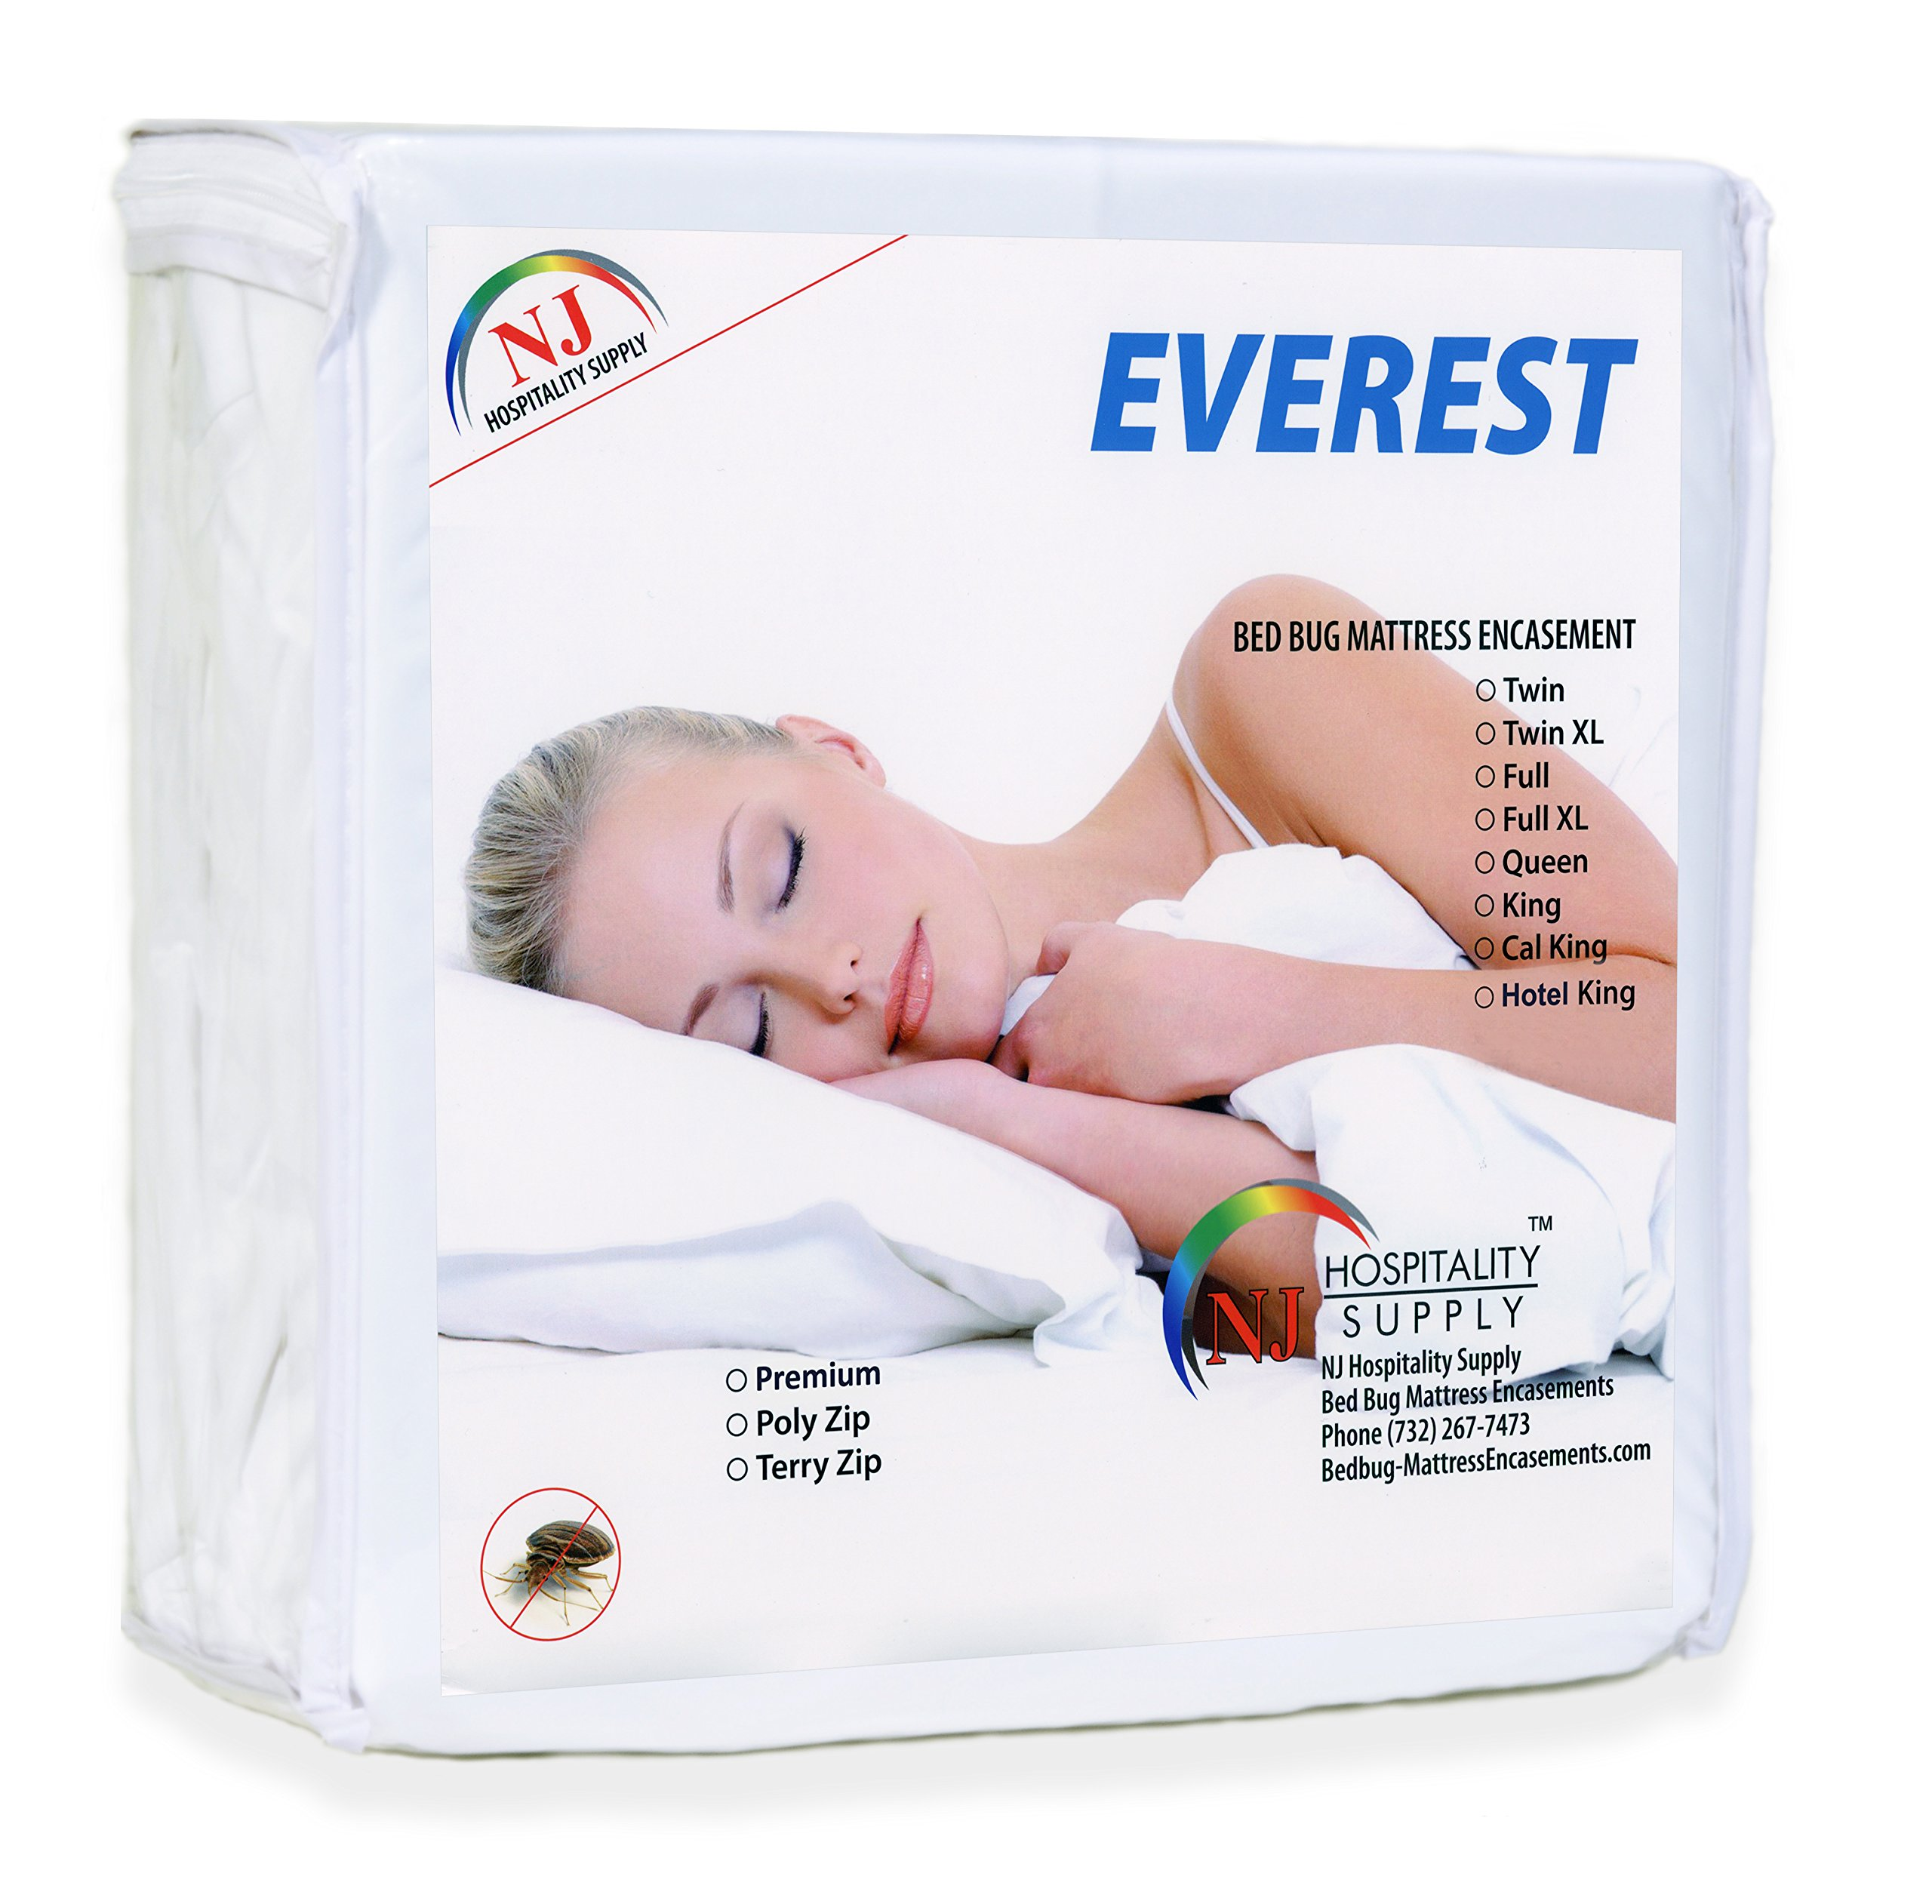 Everest Supply Premium Mattress Encasement Hotel Twin XL Size 36x80+9'' (fits 9-11'' Depth) 100% Waterproof, Bed Bug Proof, Hypoallergenic Protector, Six Sided Cover, Machine Washable.